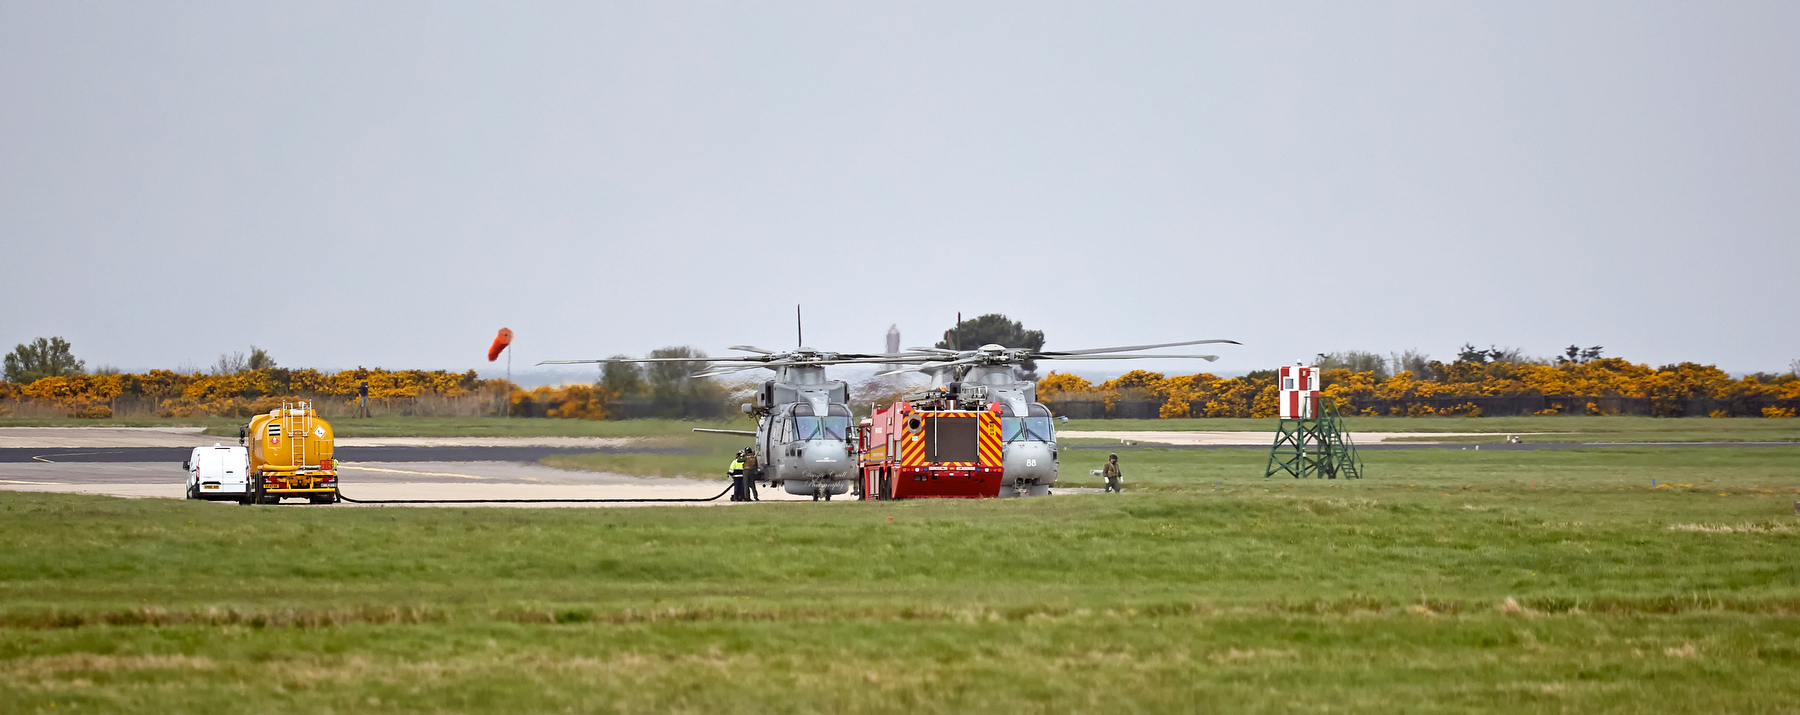 Merlins Refuelling at RAF Lossiemouth - 11 May 2018